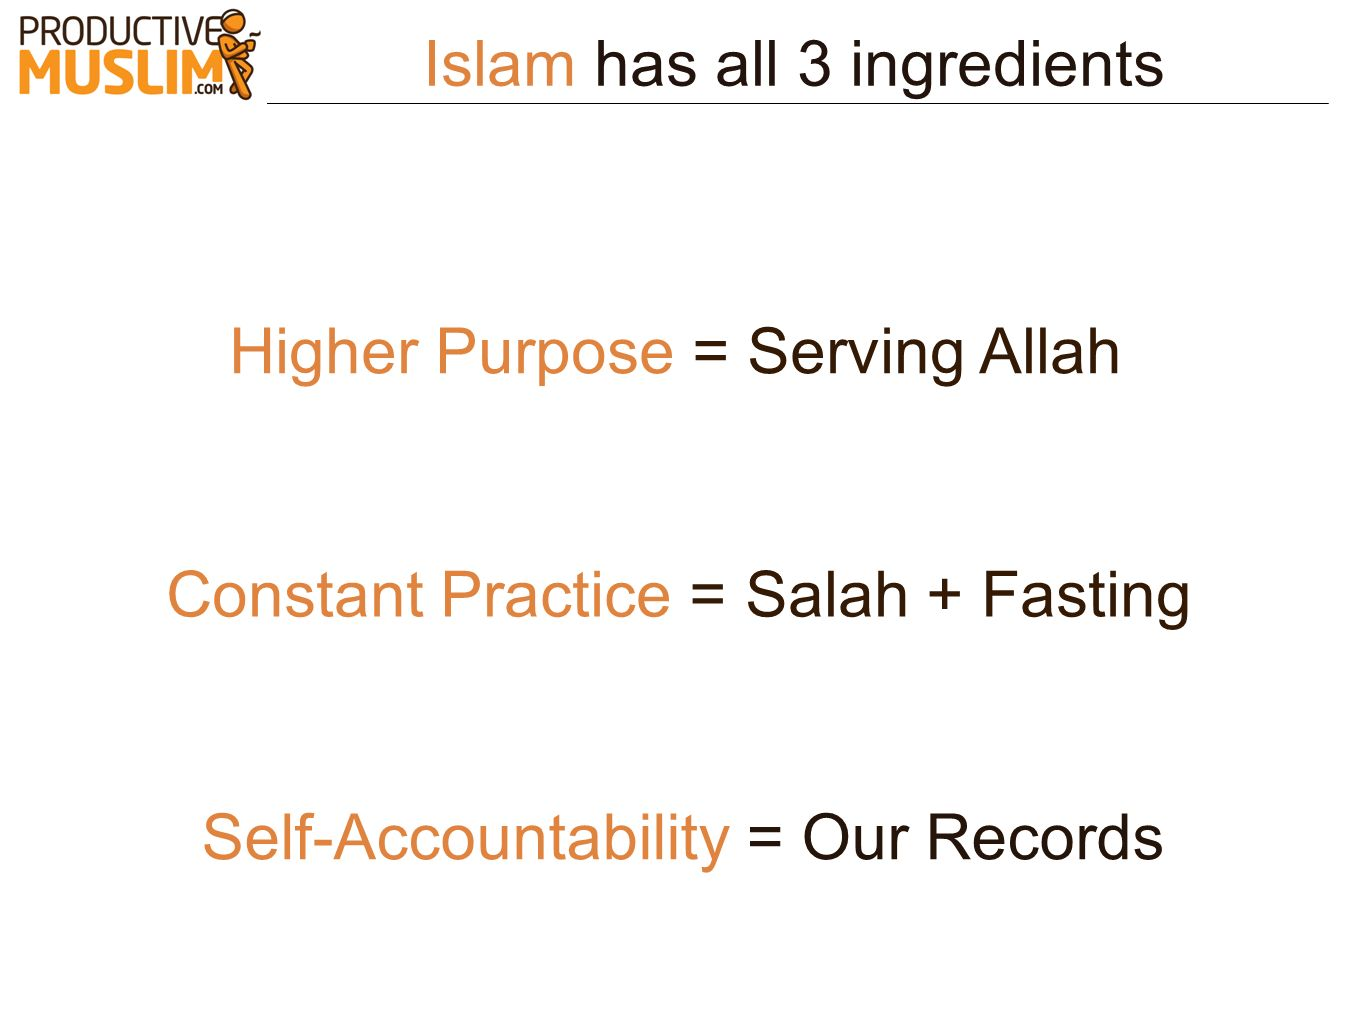 Islam has all 3 ingredients